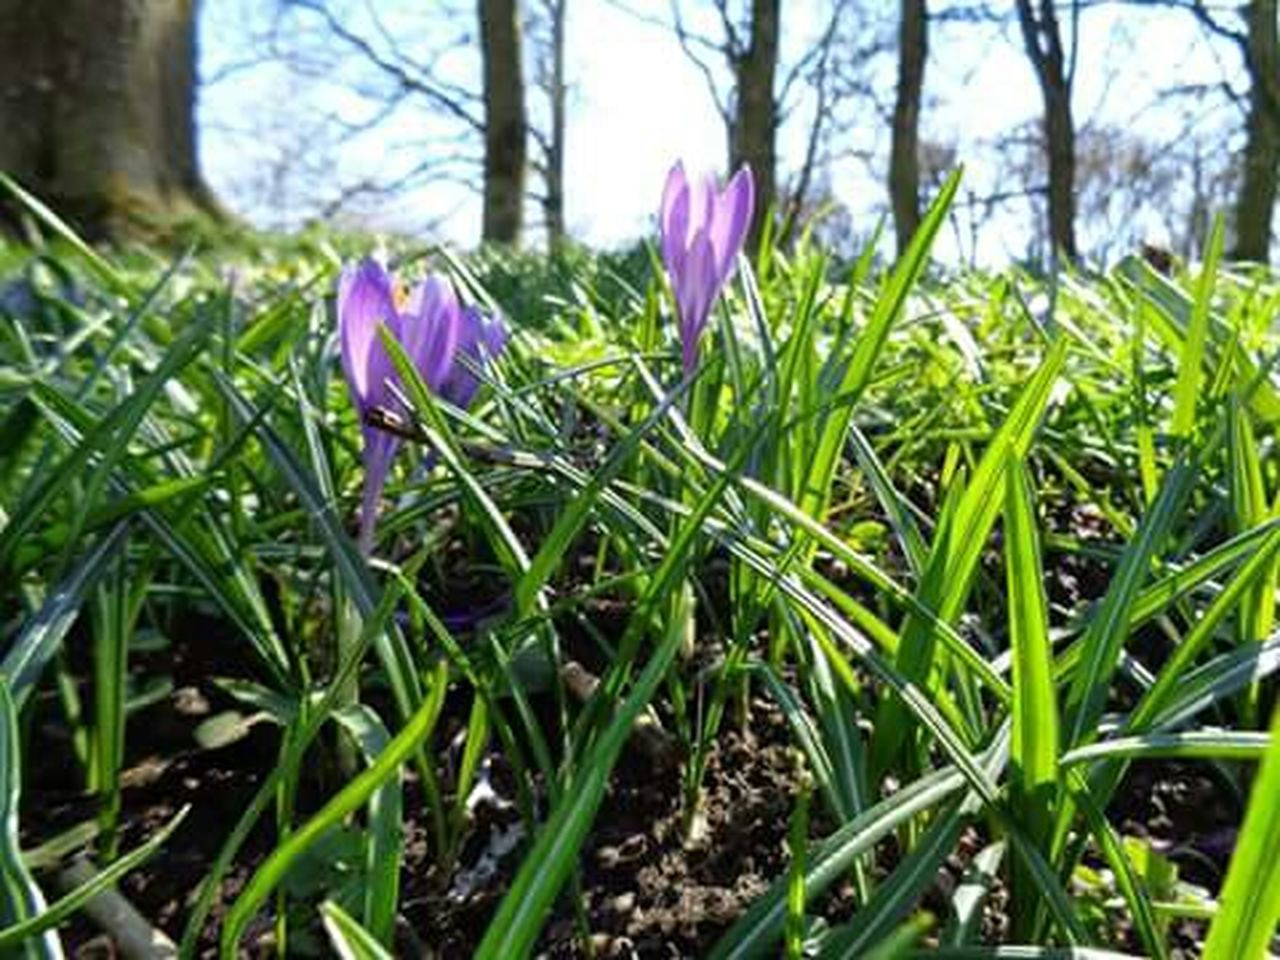 growth, flower, nature, purple, day, green color, grass, beauty in nature, outdoors, plant, crocus, freshness, no people, fragility, close-up, flower head, tree